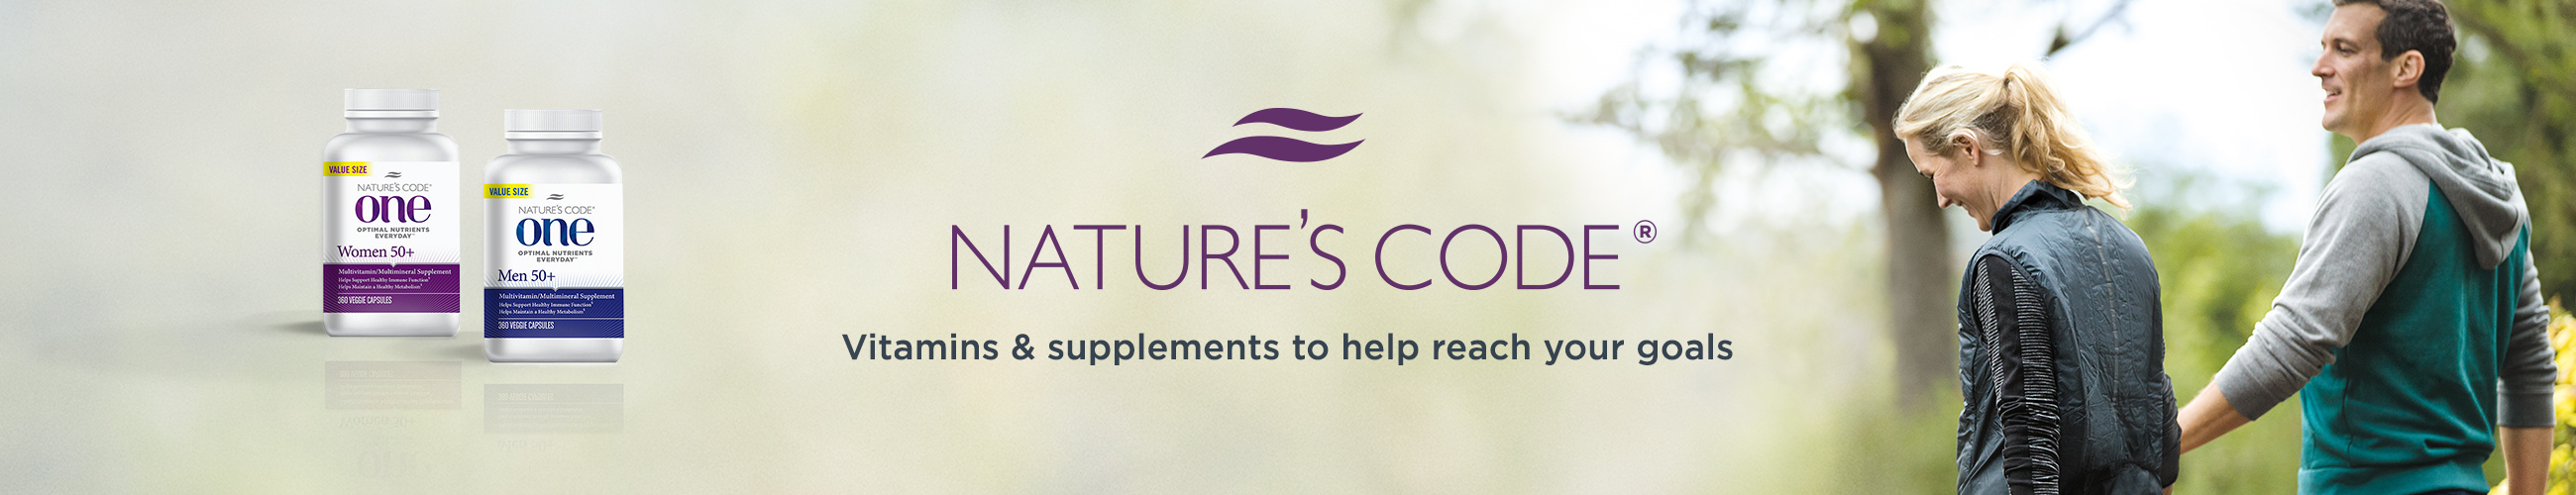 Nature's Code®. Move forward with wellness explorer Naomi Whittel & her range of vitamins & supplements